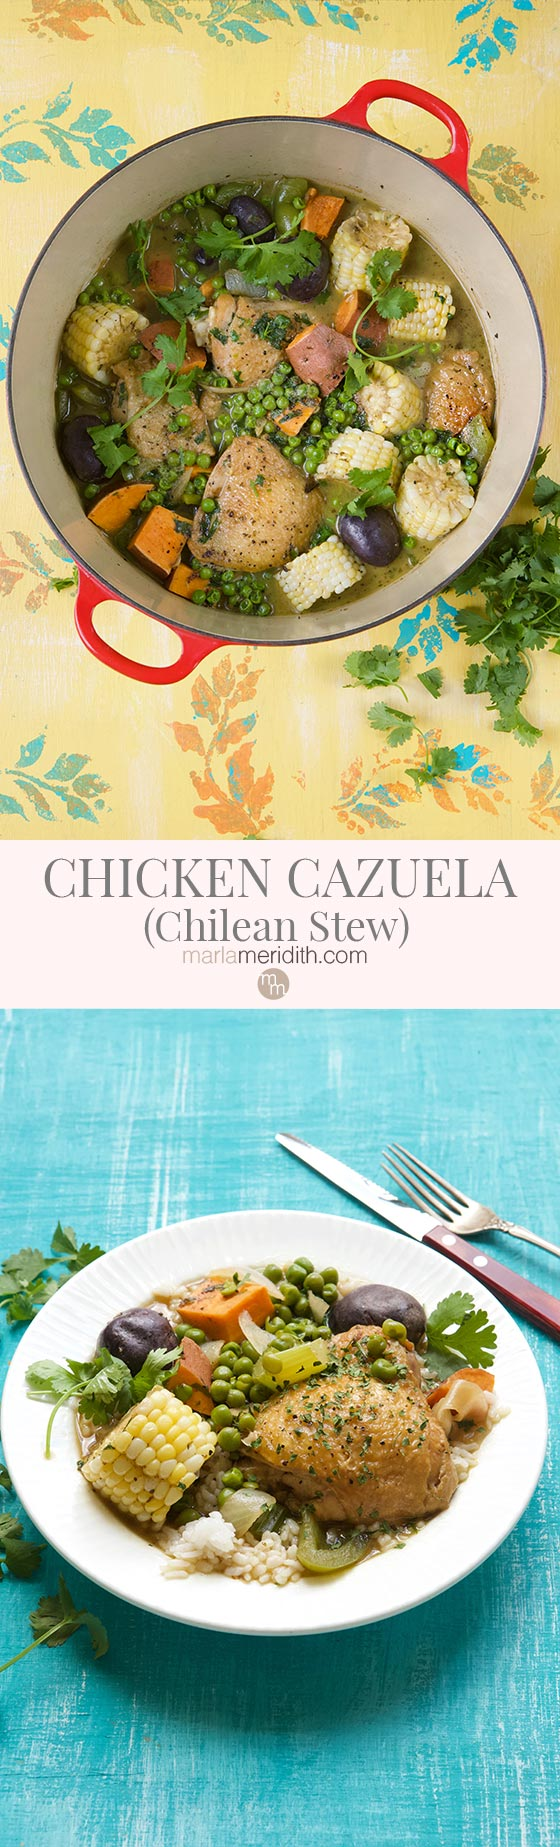 This Chicken Cazuela (Chilean Stew) recipe is perfect for all those upcoming chilly fall nights and busy back to school weeks. MarlaMeridith.com